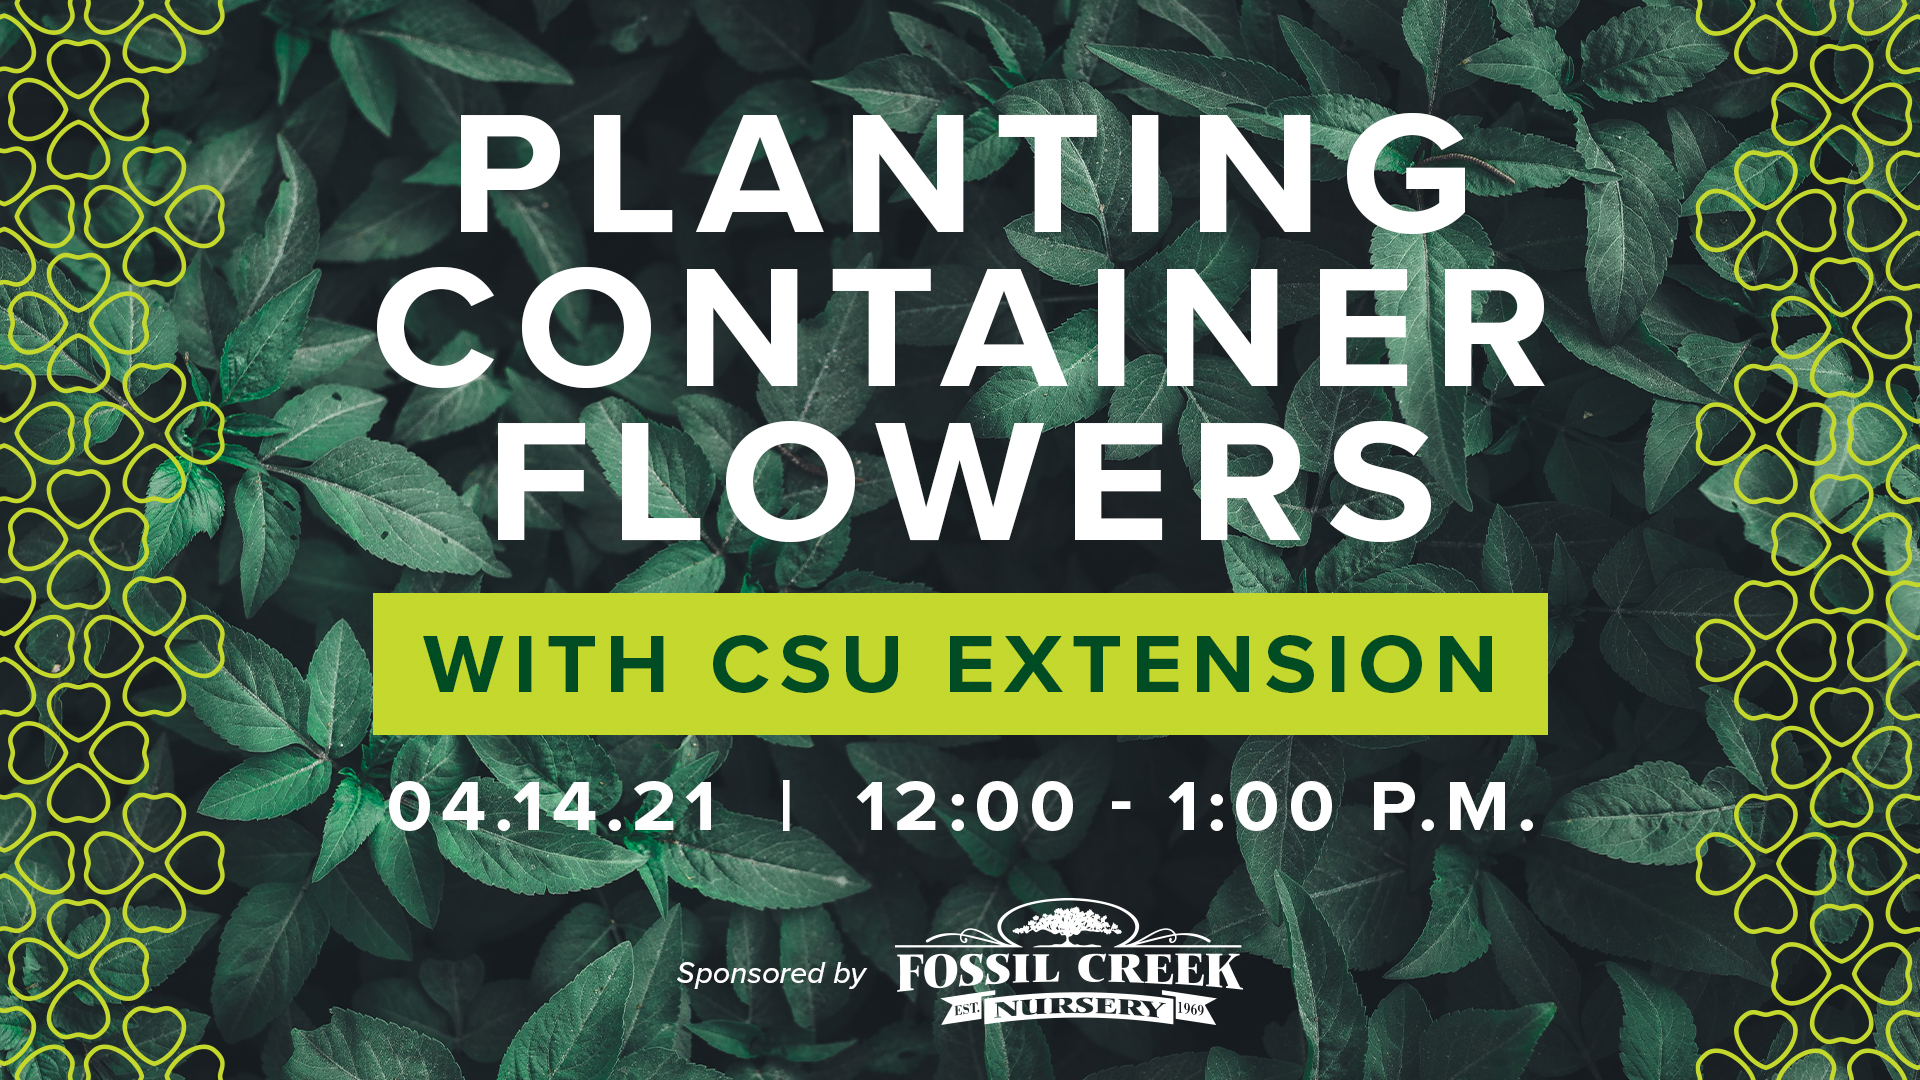 Image for Gardening Series with CSU Extension: Planting Container Flowers webinar